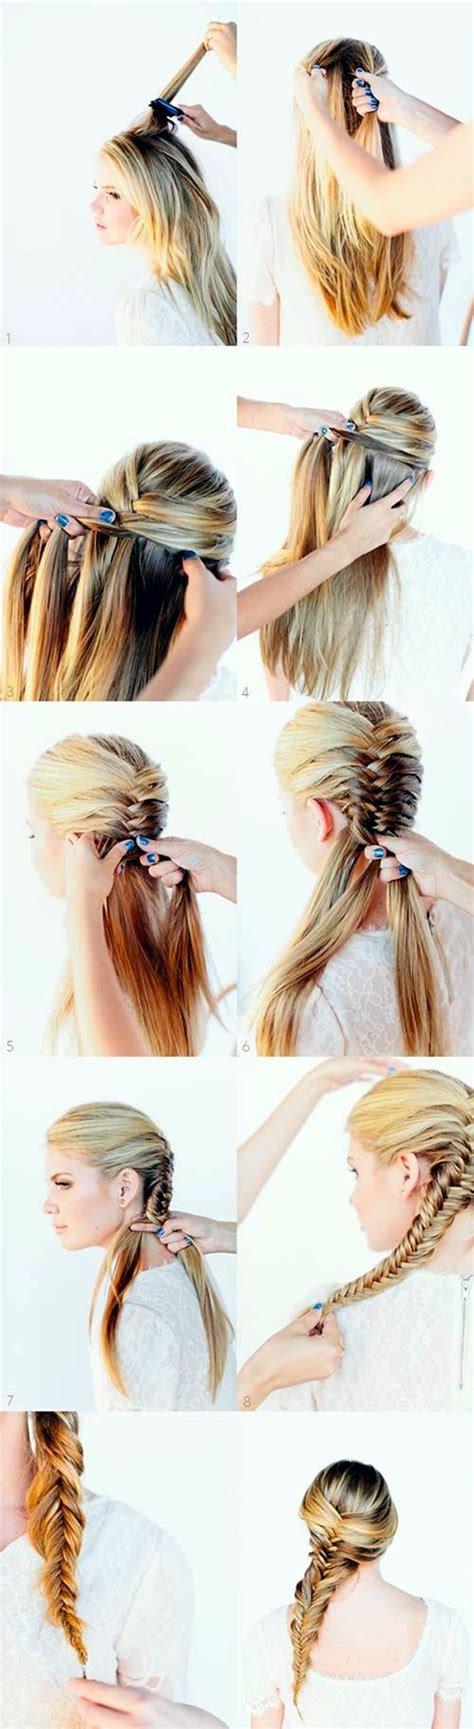 hairstyles every girl needs to know 5 braid styles every girl should know